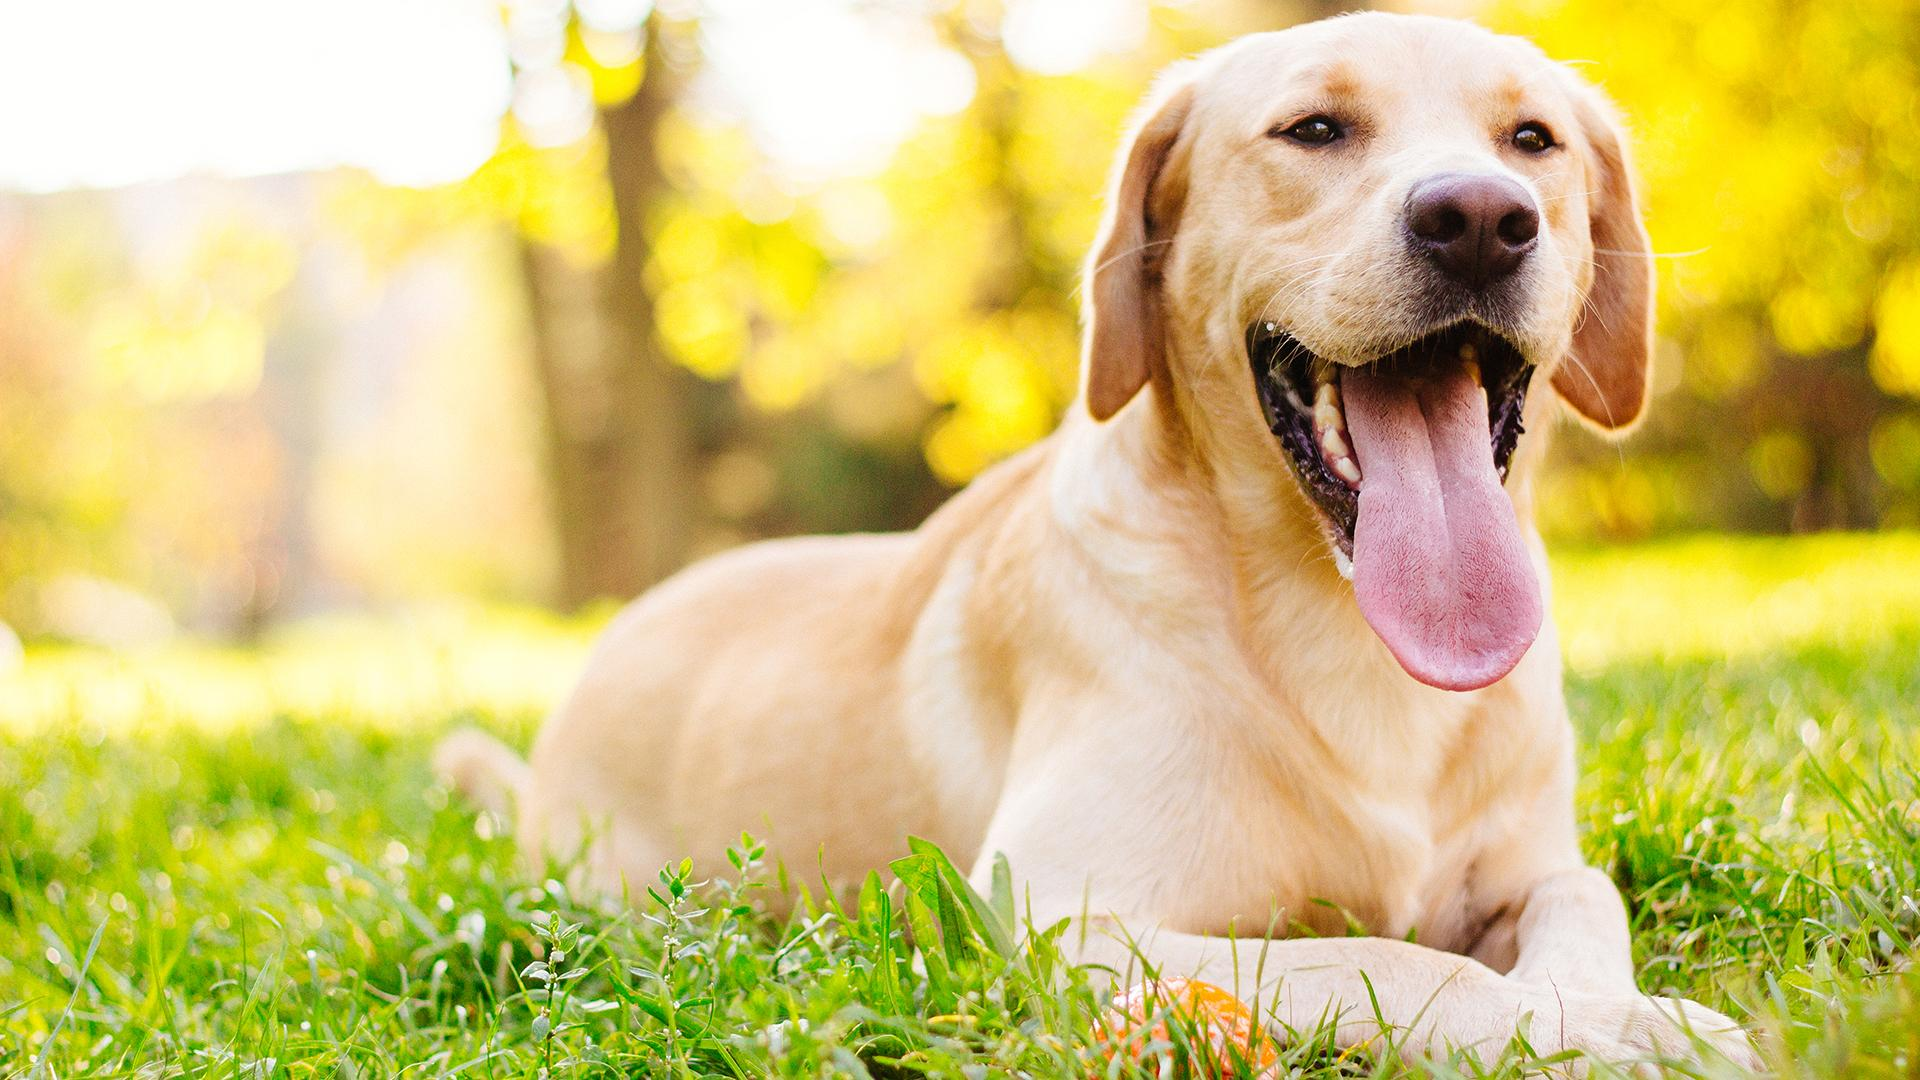 The Best 9 Dog DNA Test Kit to Get For Your Dog in 2020 |